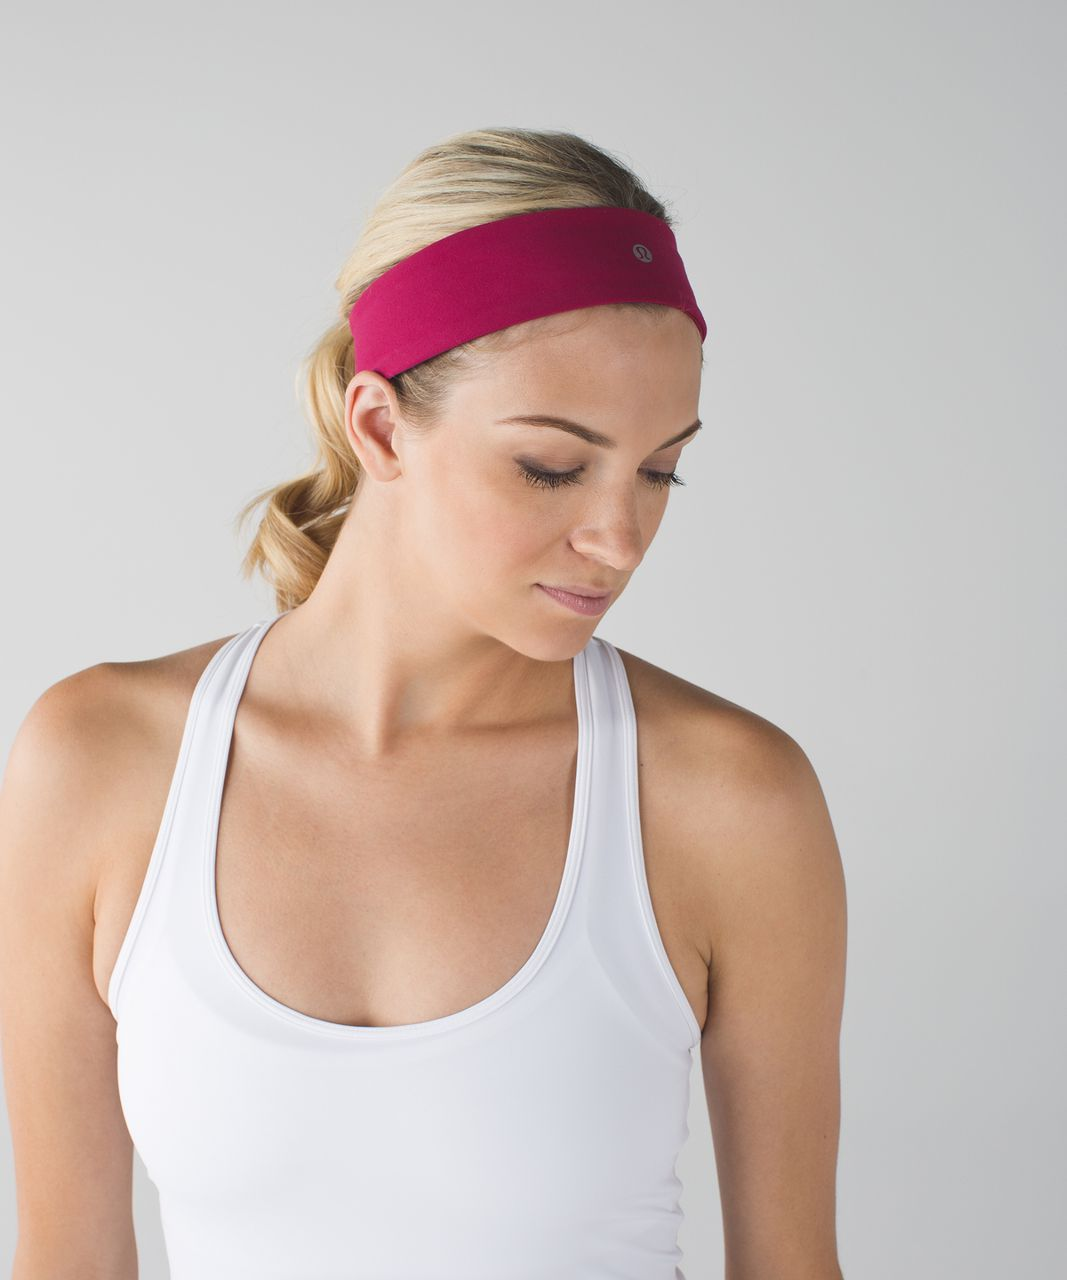 Lululemon Fly Away Tamer Headband II - Berry Rumble